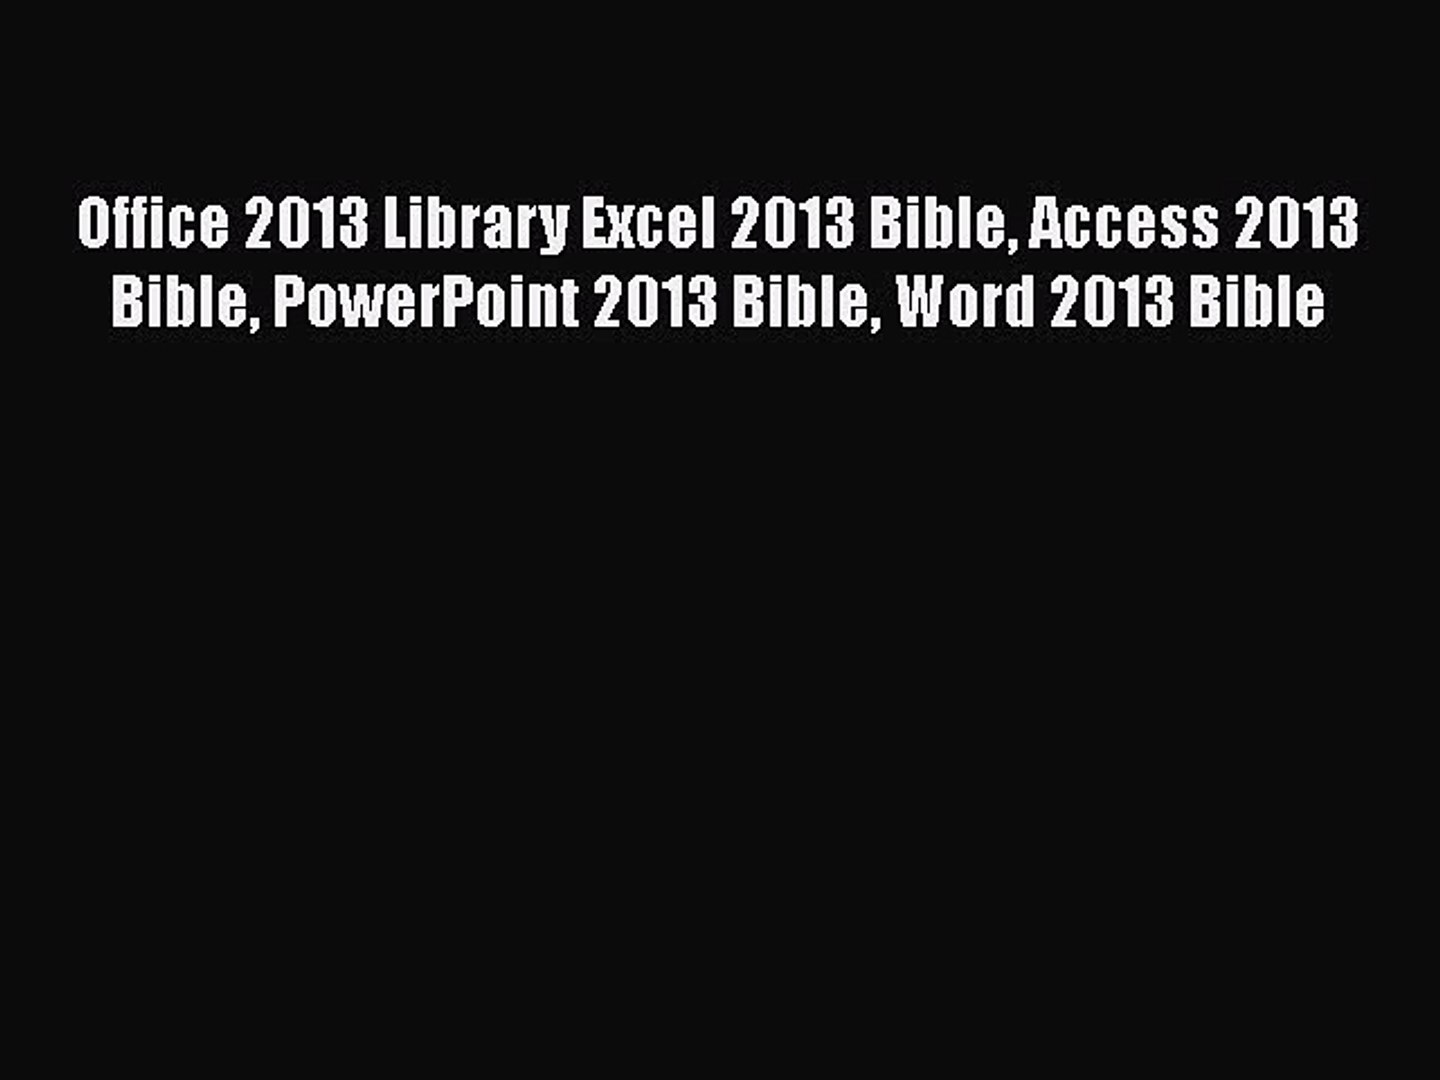 Download Office 2013 Library Excel 2013 Bible Access 2013 Bible PowerPoint 2013 Bible Word